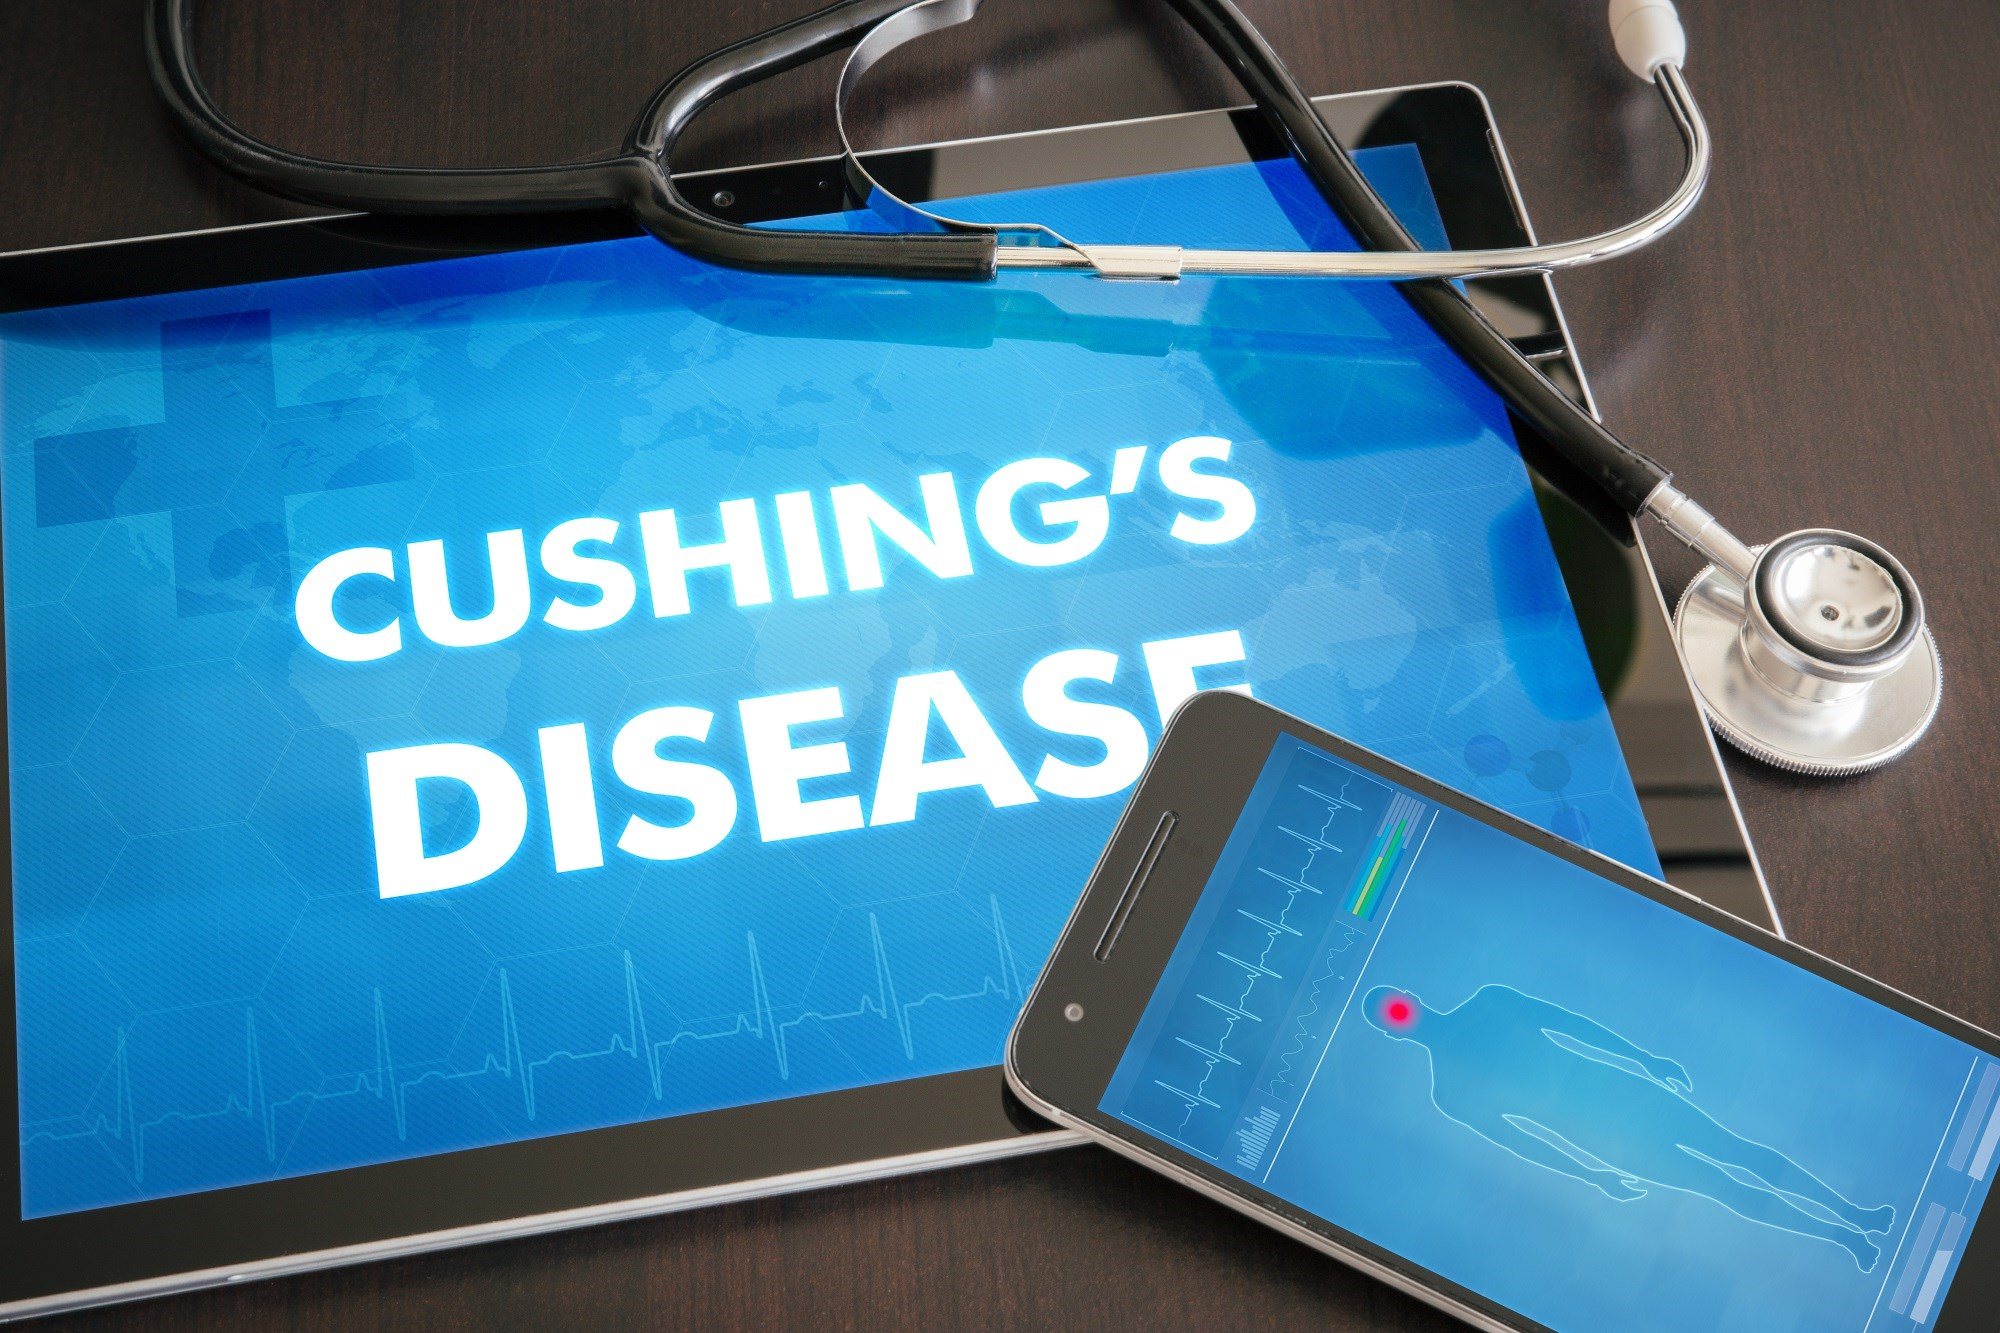 Age-Related Differences in Manifestation of Cushing Disease Identified